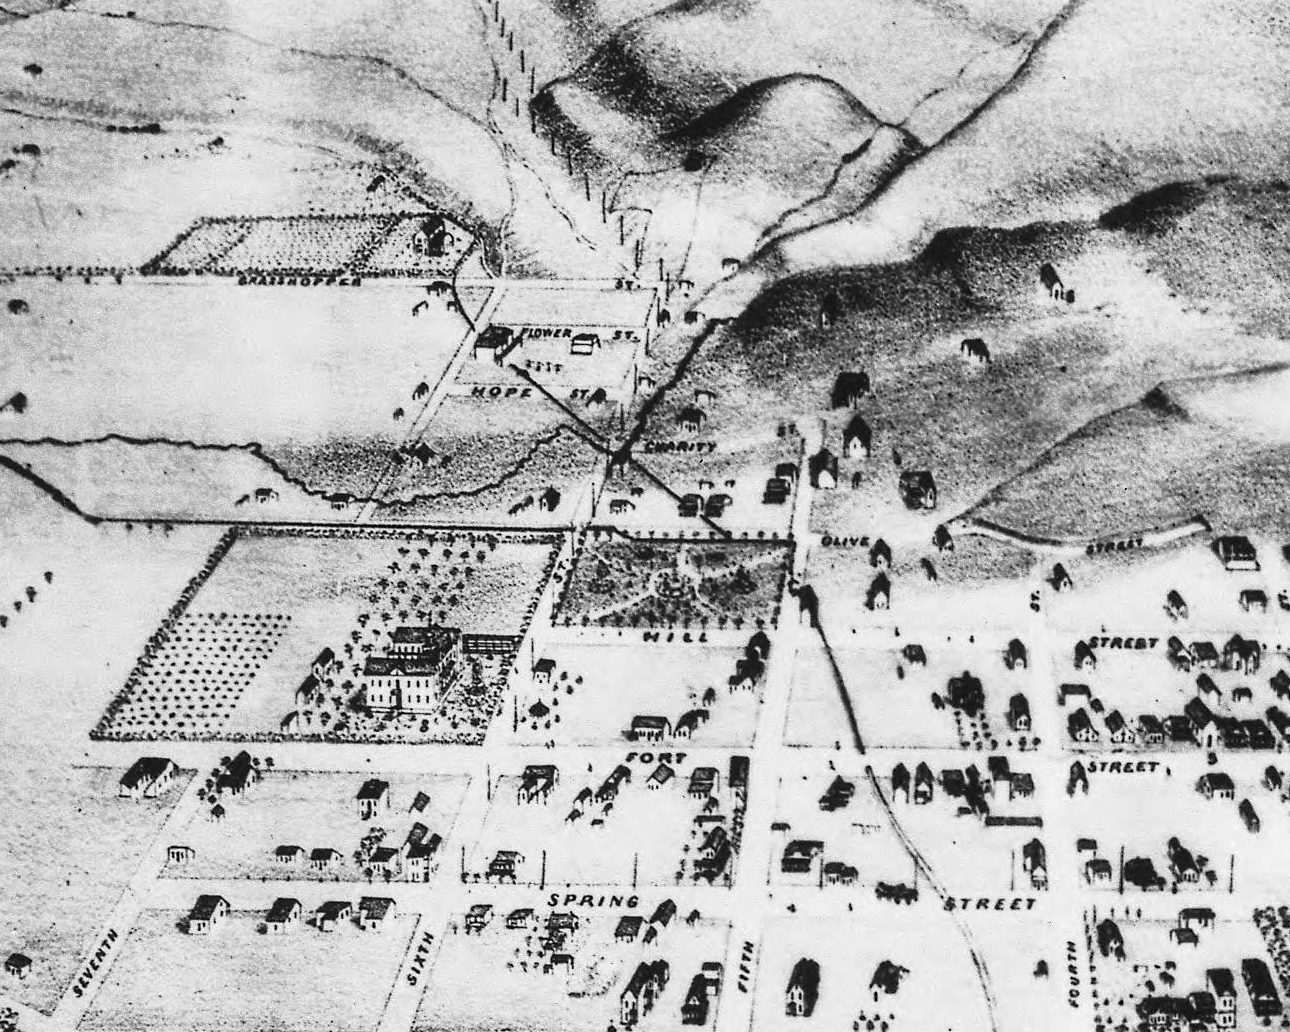 Inset of the park area in 1871. Mary's house is just to the right (north)of the park.